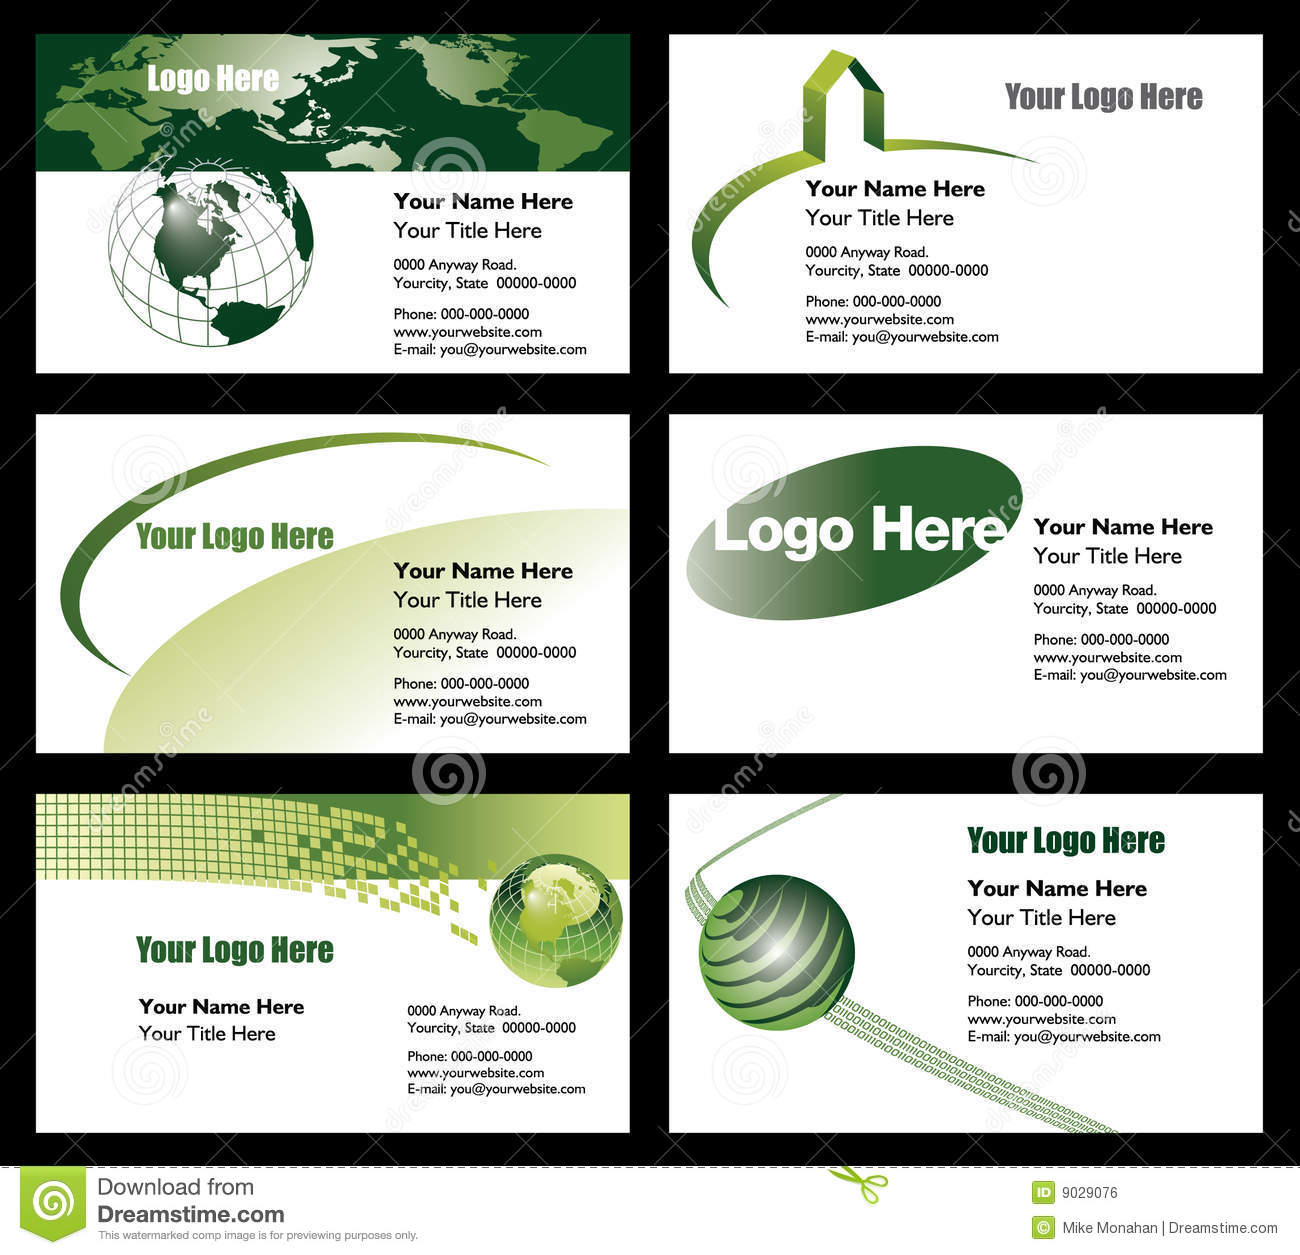 Business Card Templates Stock Vector Illustration Of Oval - Business card layout template